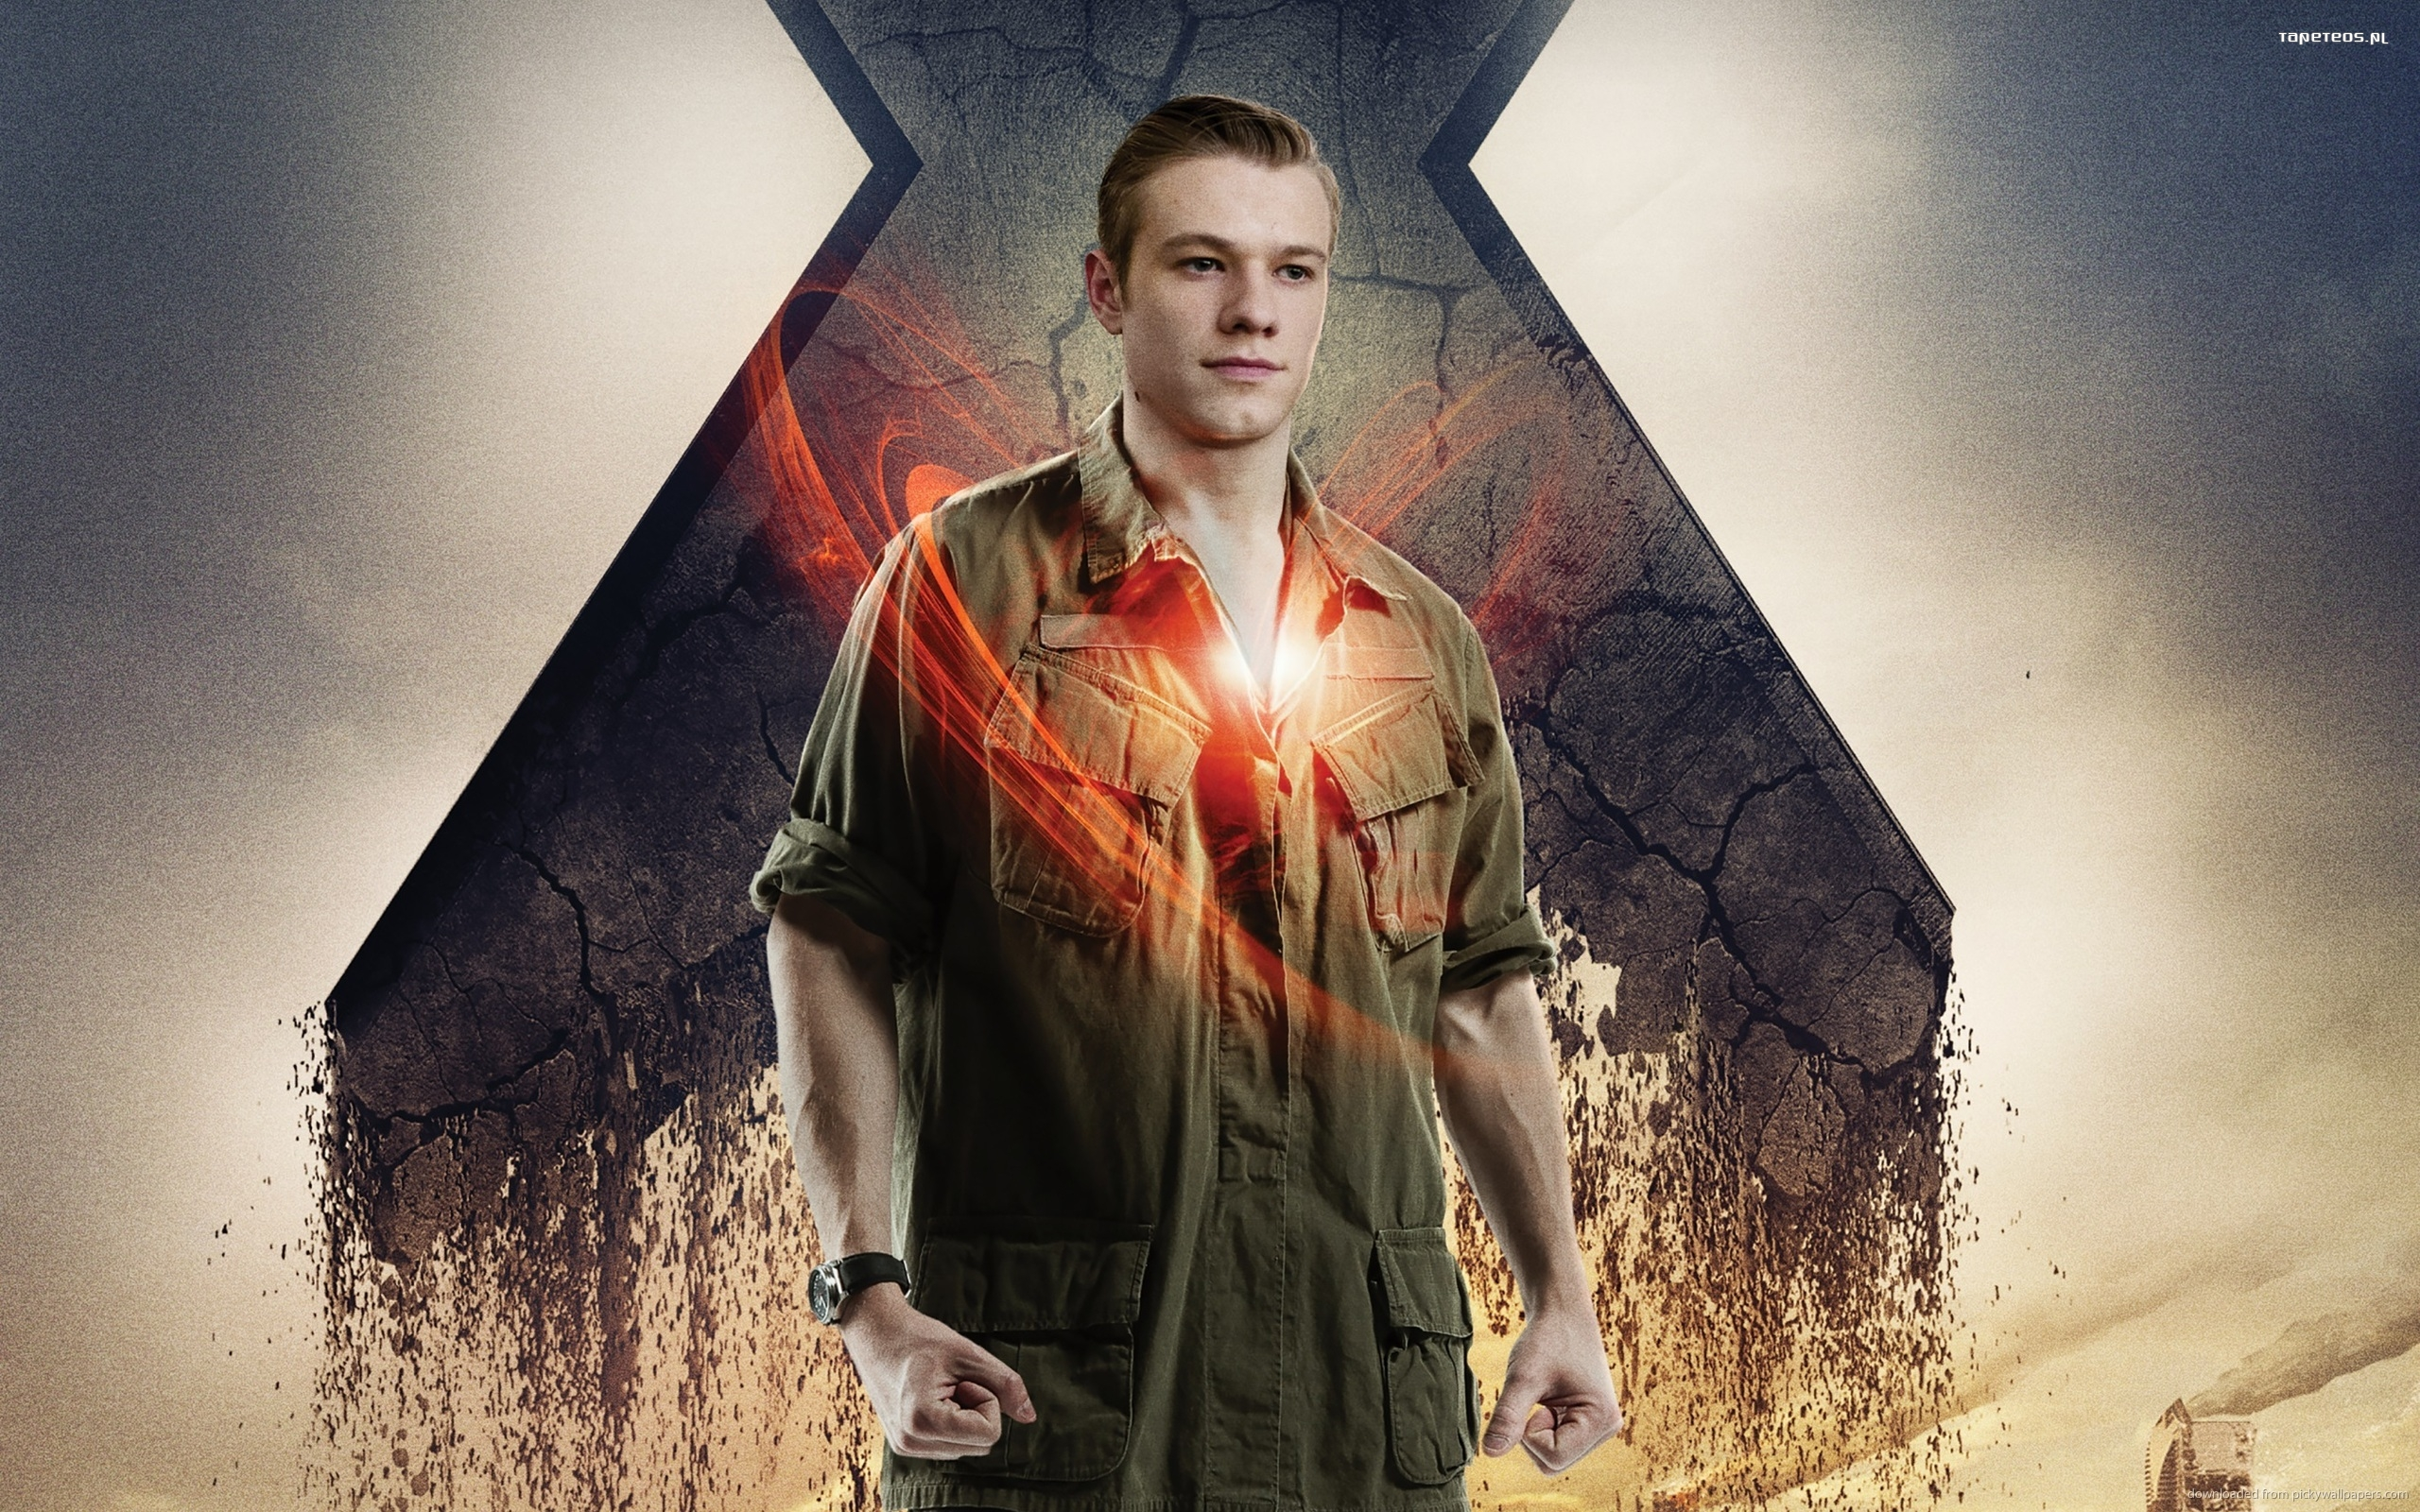 X-Men Days of Future Past 050 Lucas Till, Havok